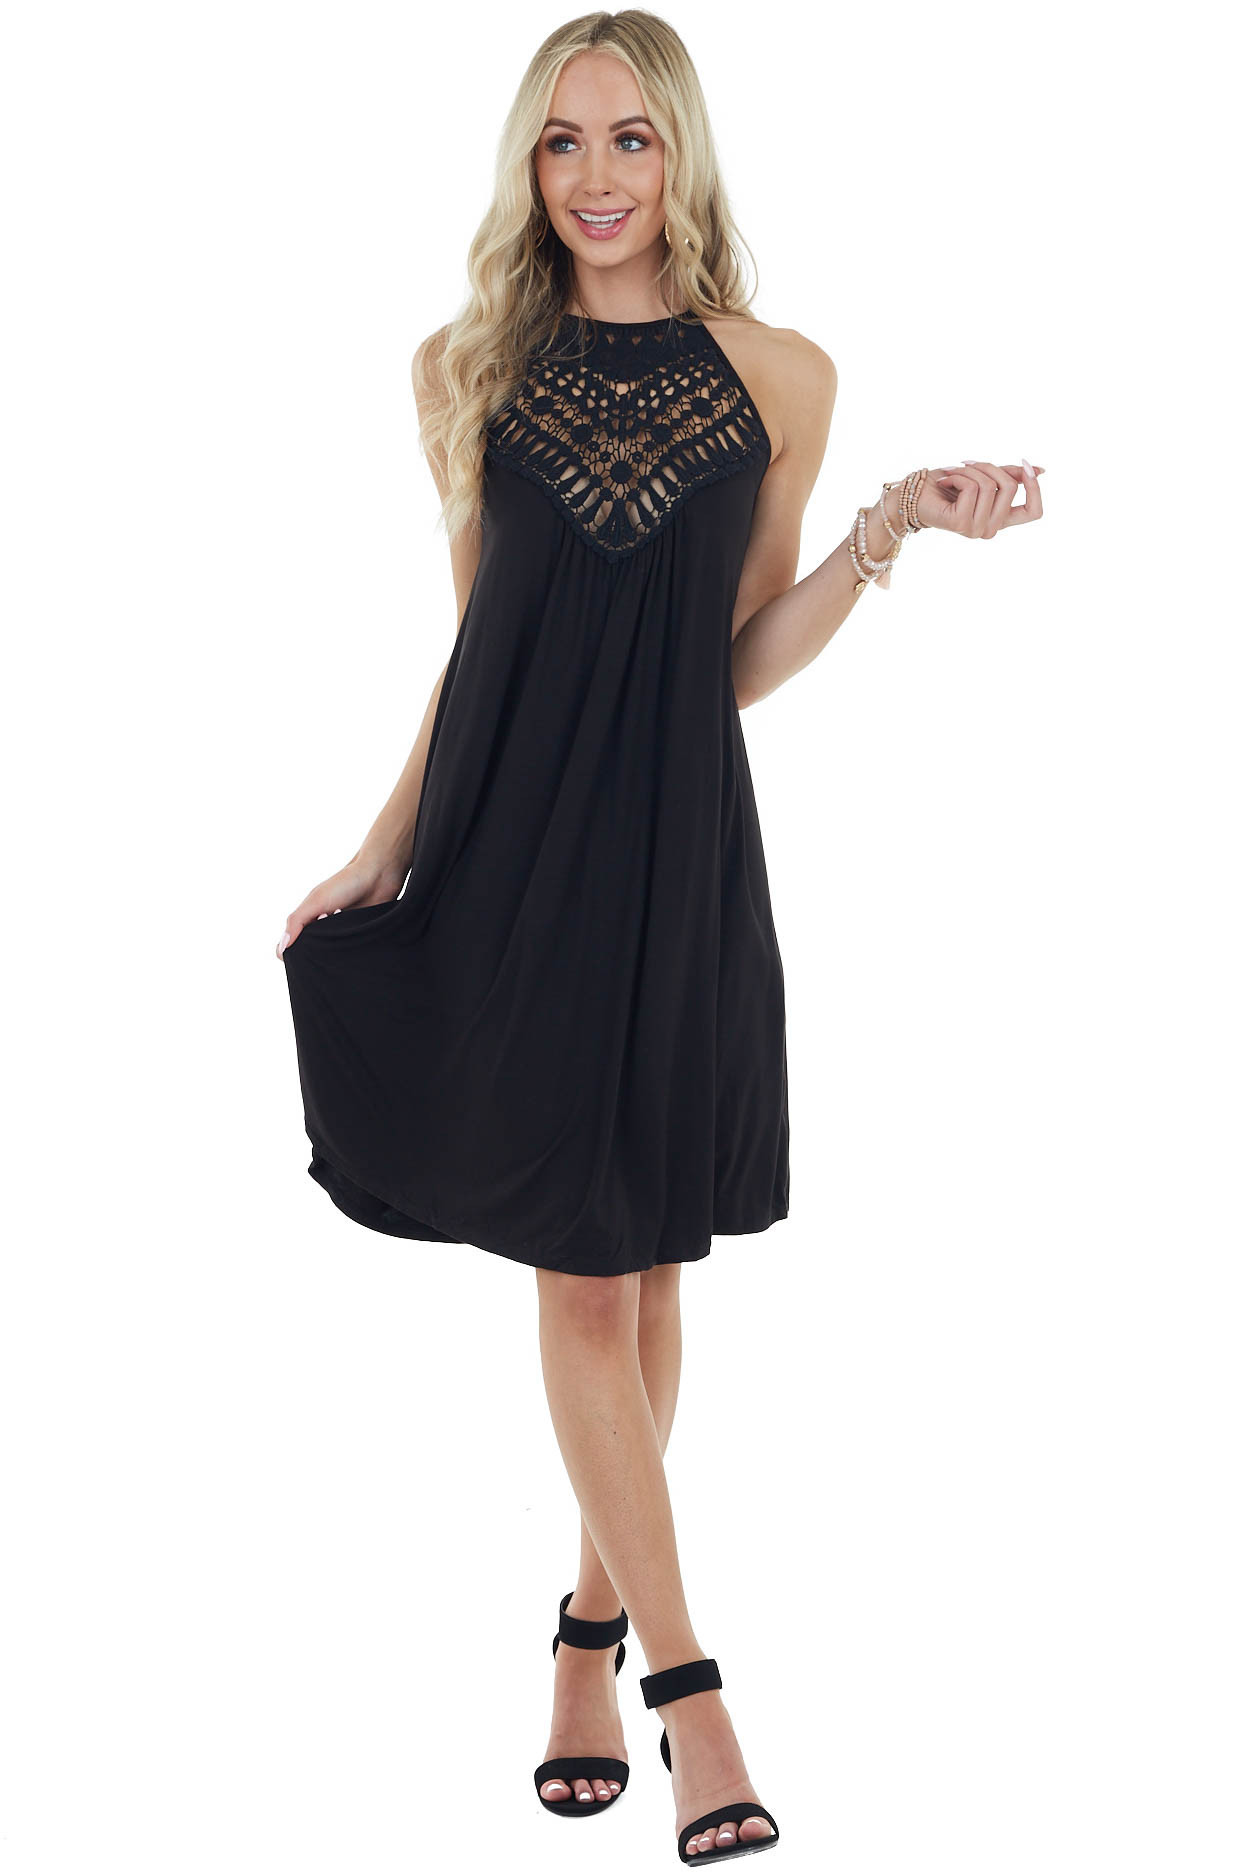 Onyx Black Short Dress with Lace Front and Keyhole Back